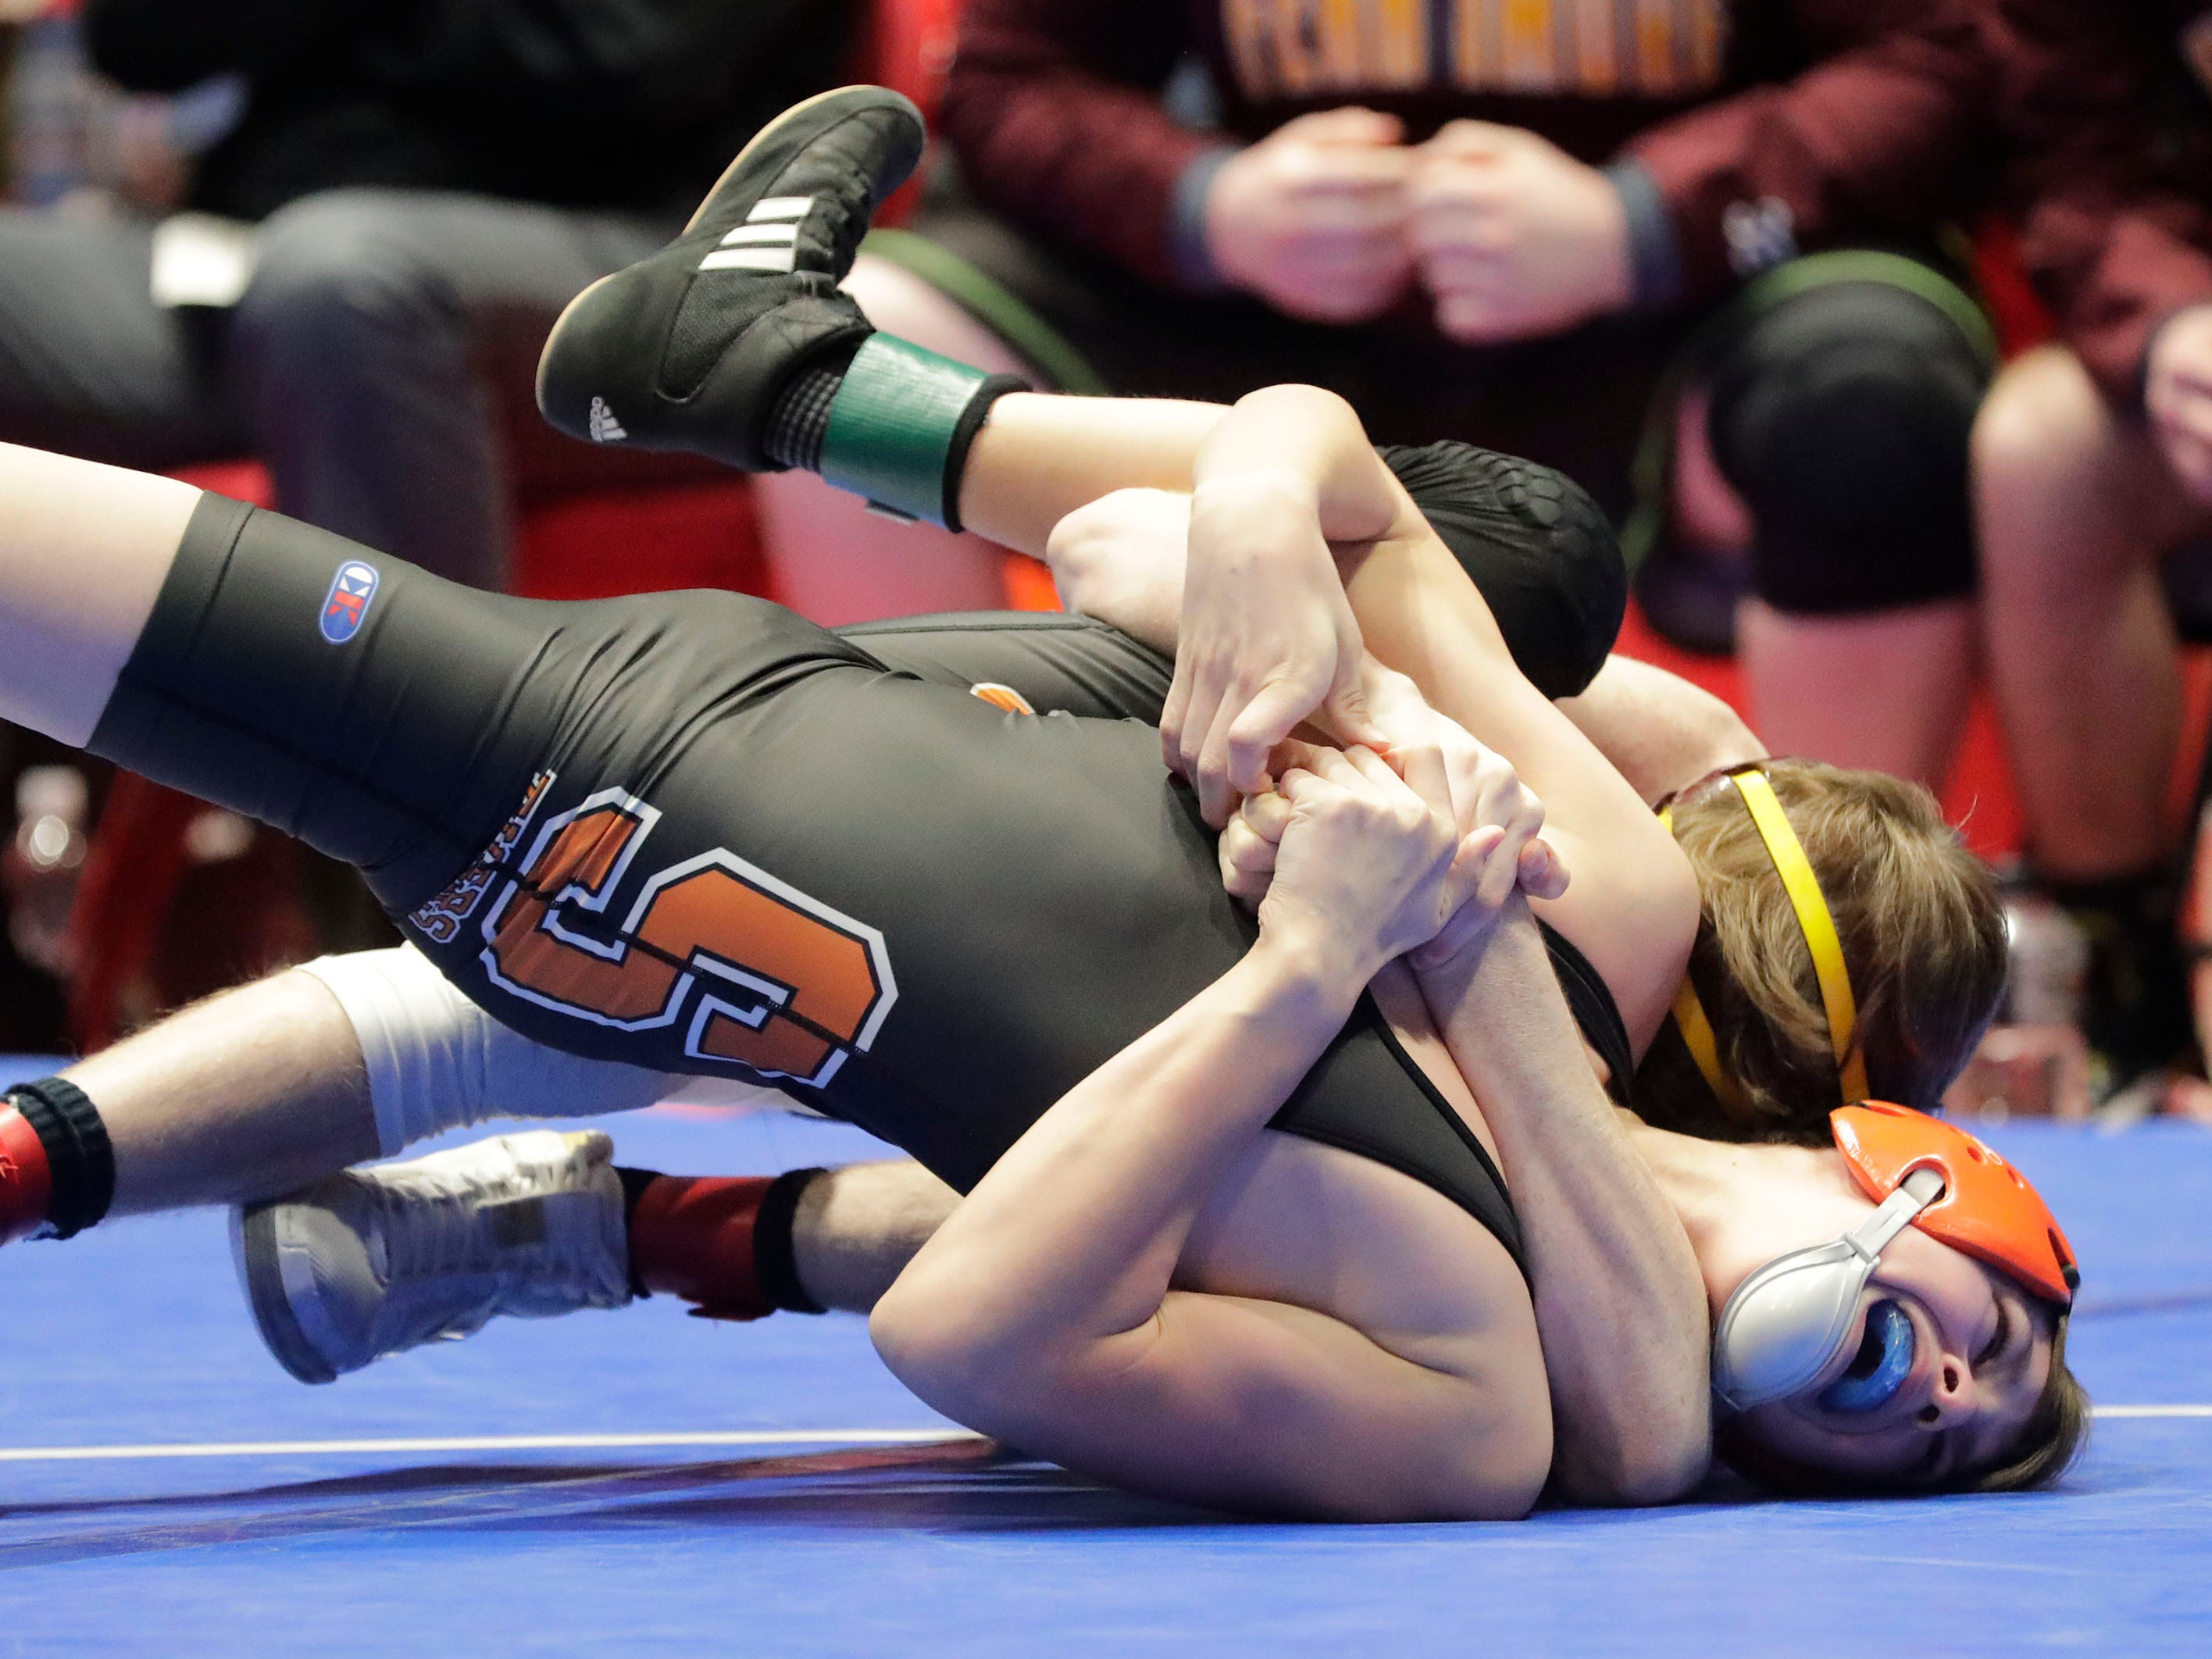 Stratford's Logan Gaulke, right, wrestles Fennimore's Brody Lee in the 106-pound class, Saturday, March 2, 2019, in Madison, Wis.